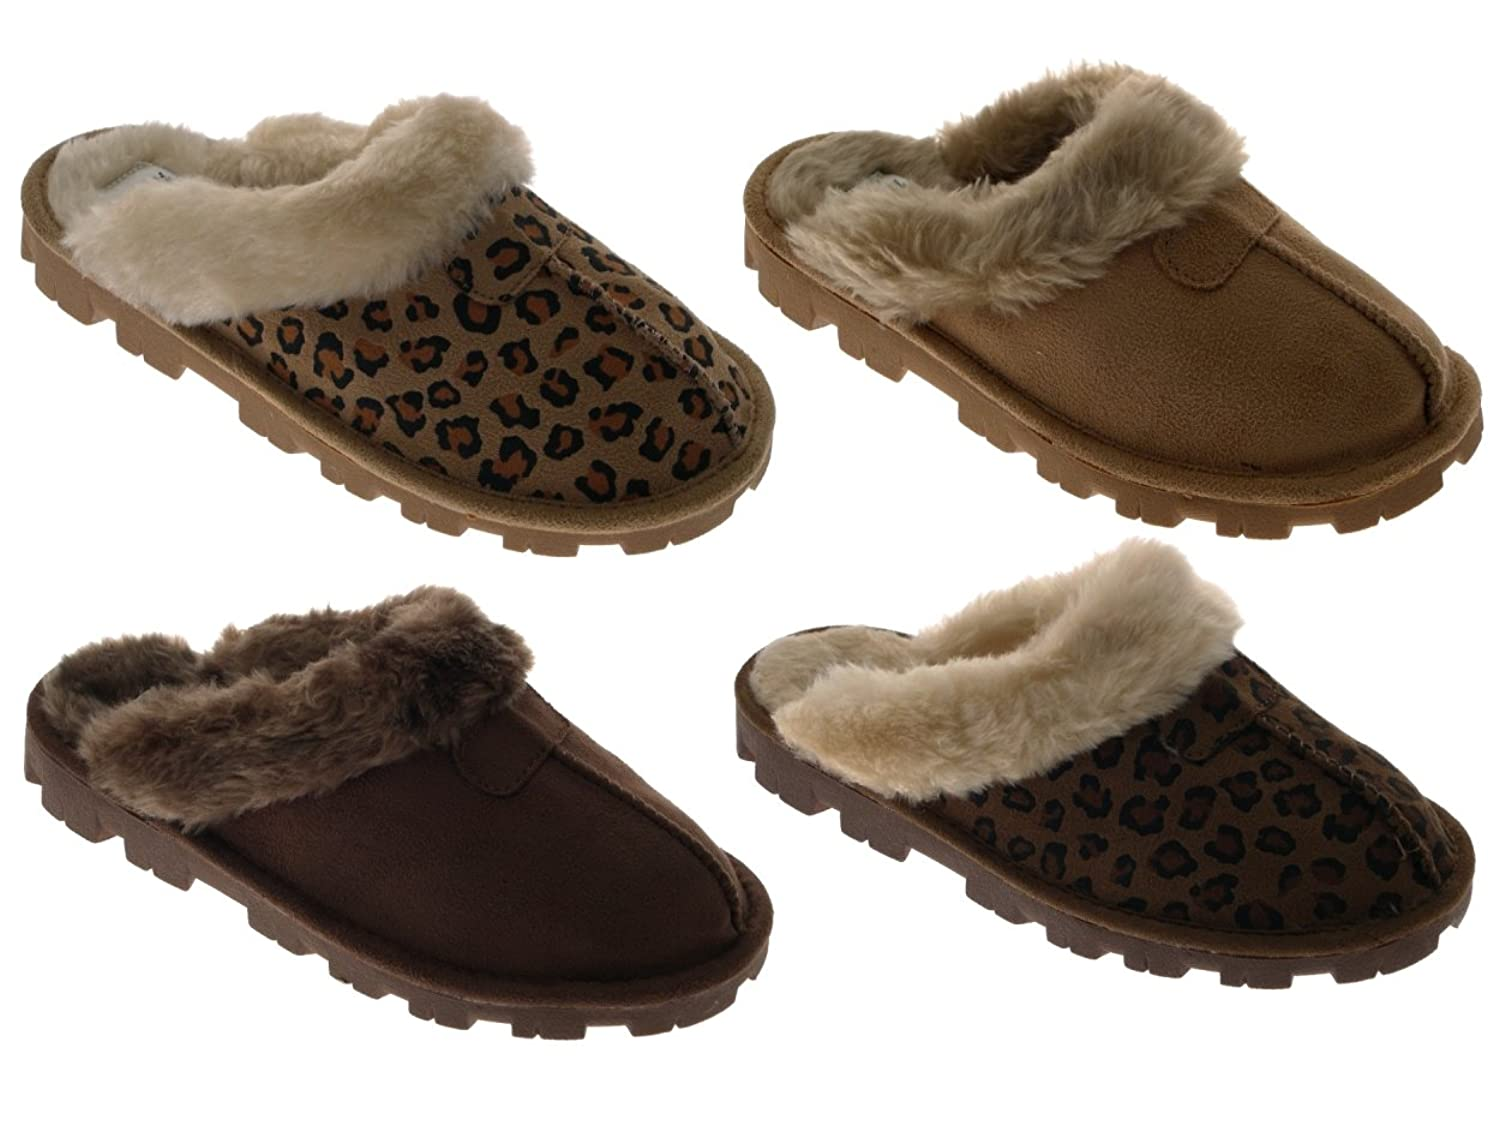 WOMENS SLIPPERS MULES WARM COMFORTABLE SLIP ONS LADIES GIRLS FAUX SHEEPSKIN  SUEDE FUR LINED SLIPPER SHOES LEOPARD DARK BROWN SIZE UK 3: Amazon.co.uk:  Shoes ...